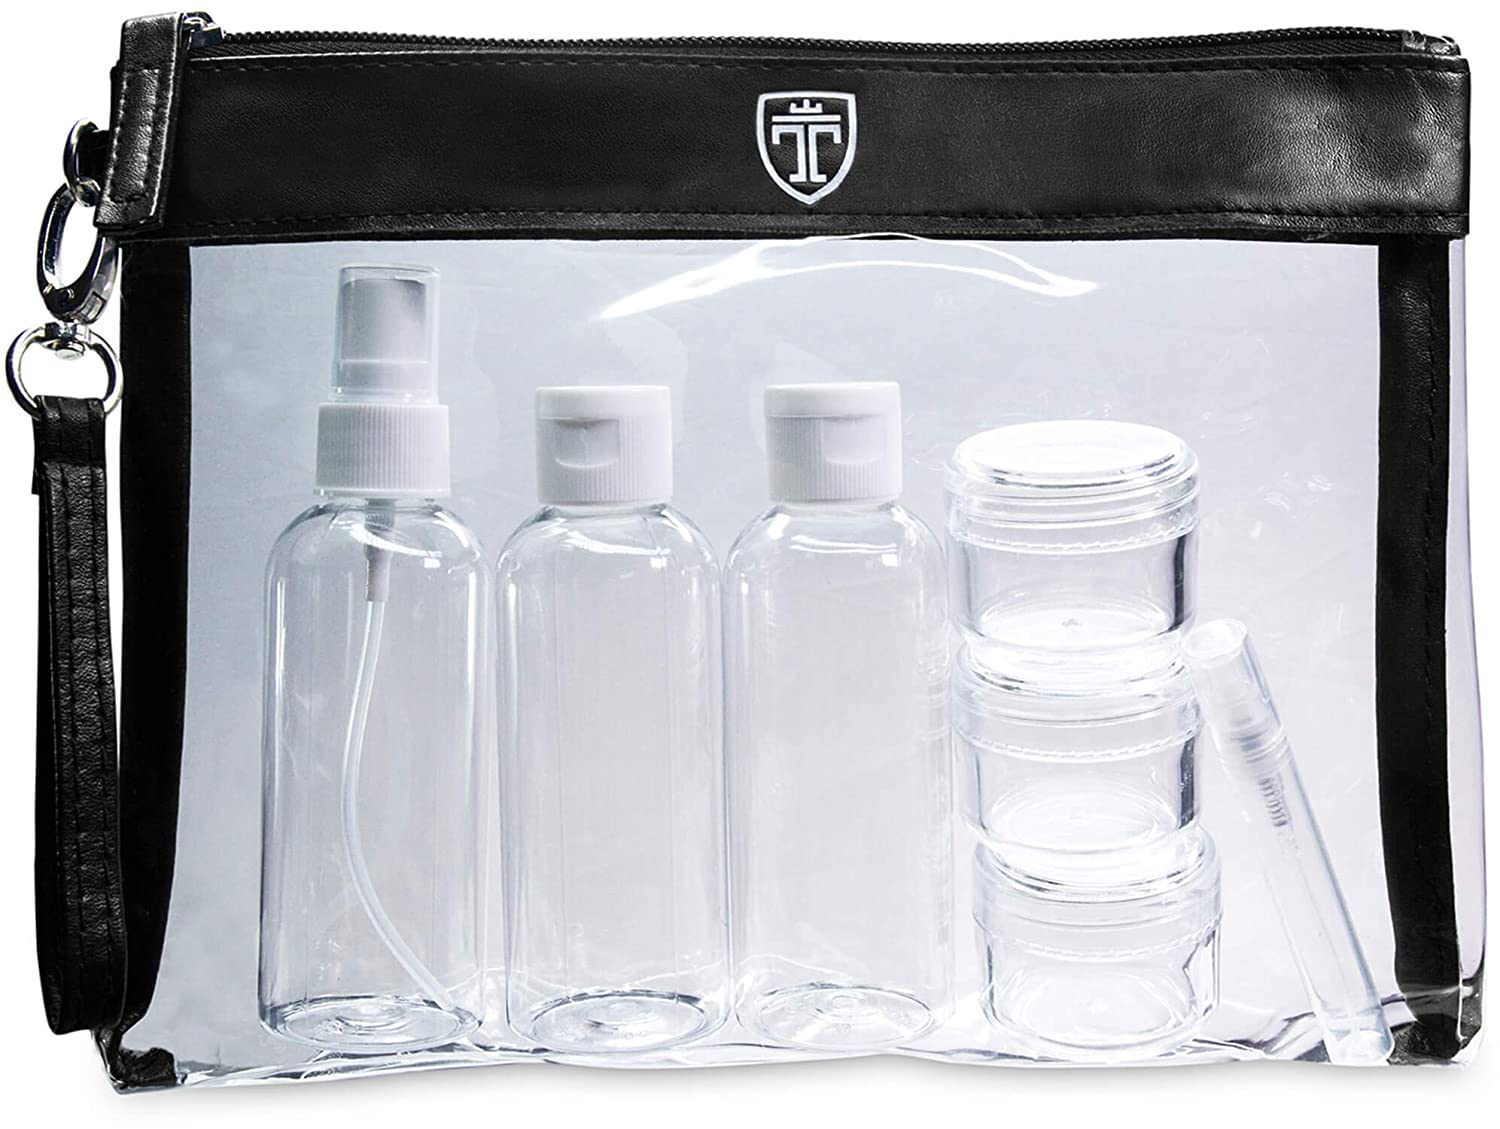 TSA Approved Clear Toiletry Bag with 7 Bottles max.3.38oz – Liduid Travel Set – Transparent Zipper Bag for Cosmetics – Plastic PVC Airport Airline Security Luggage Organizer Pouch Wash Kit TRAVANDO